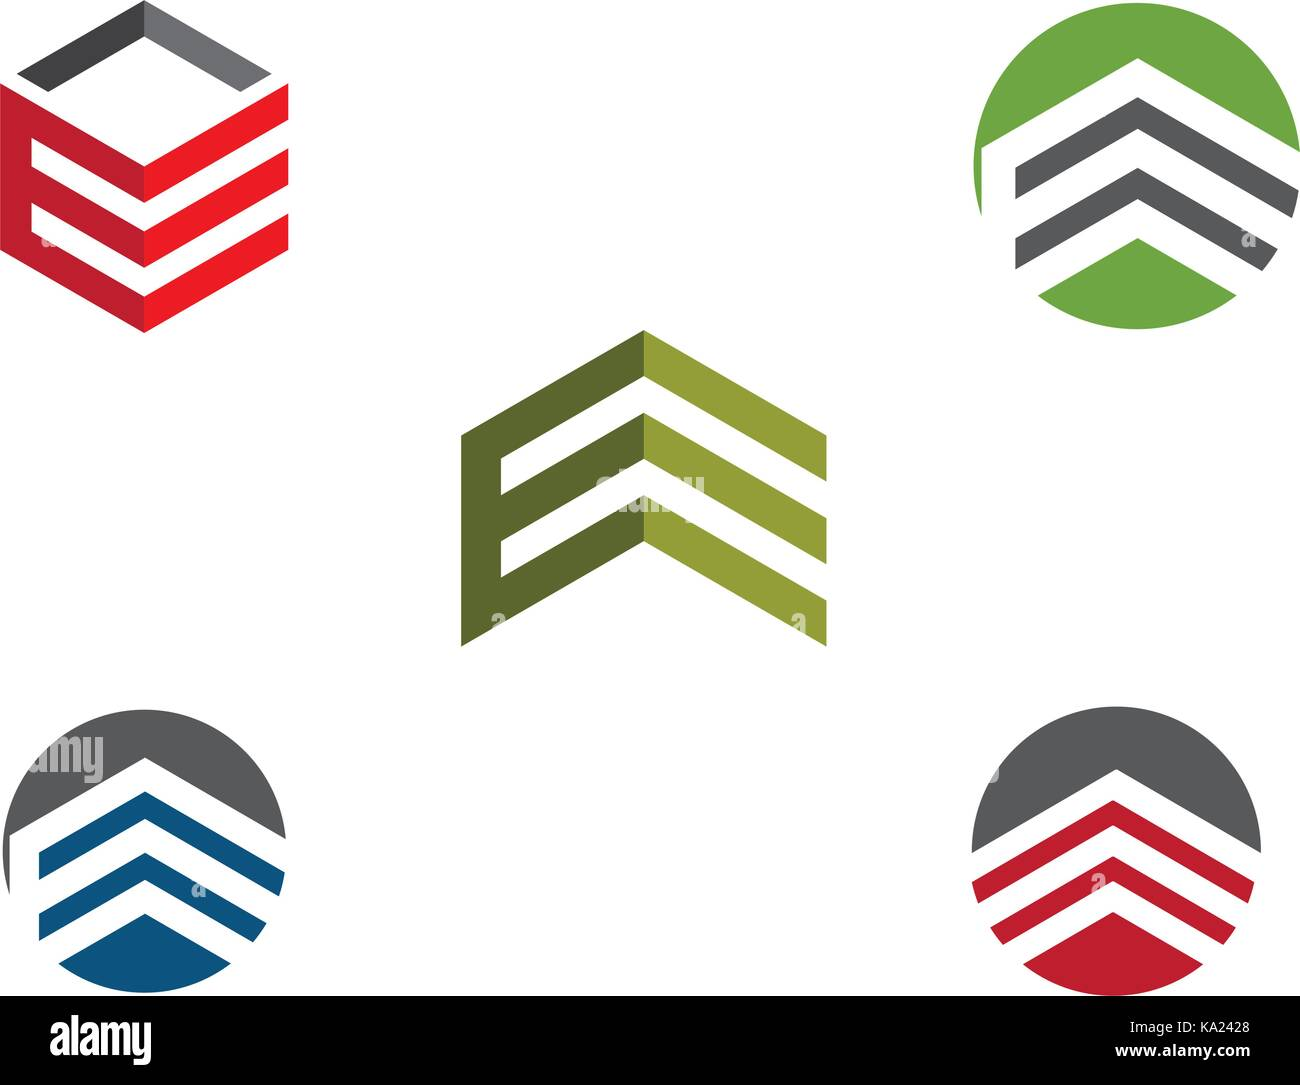 Business Finance professional logo template vector icon - Stock Image